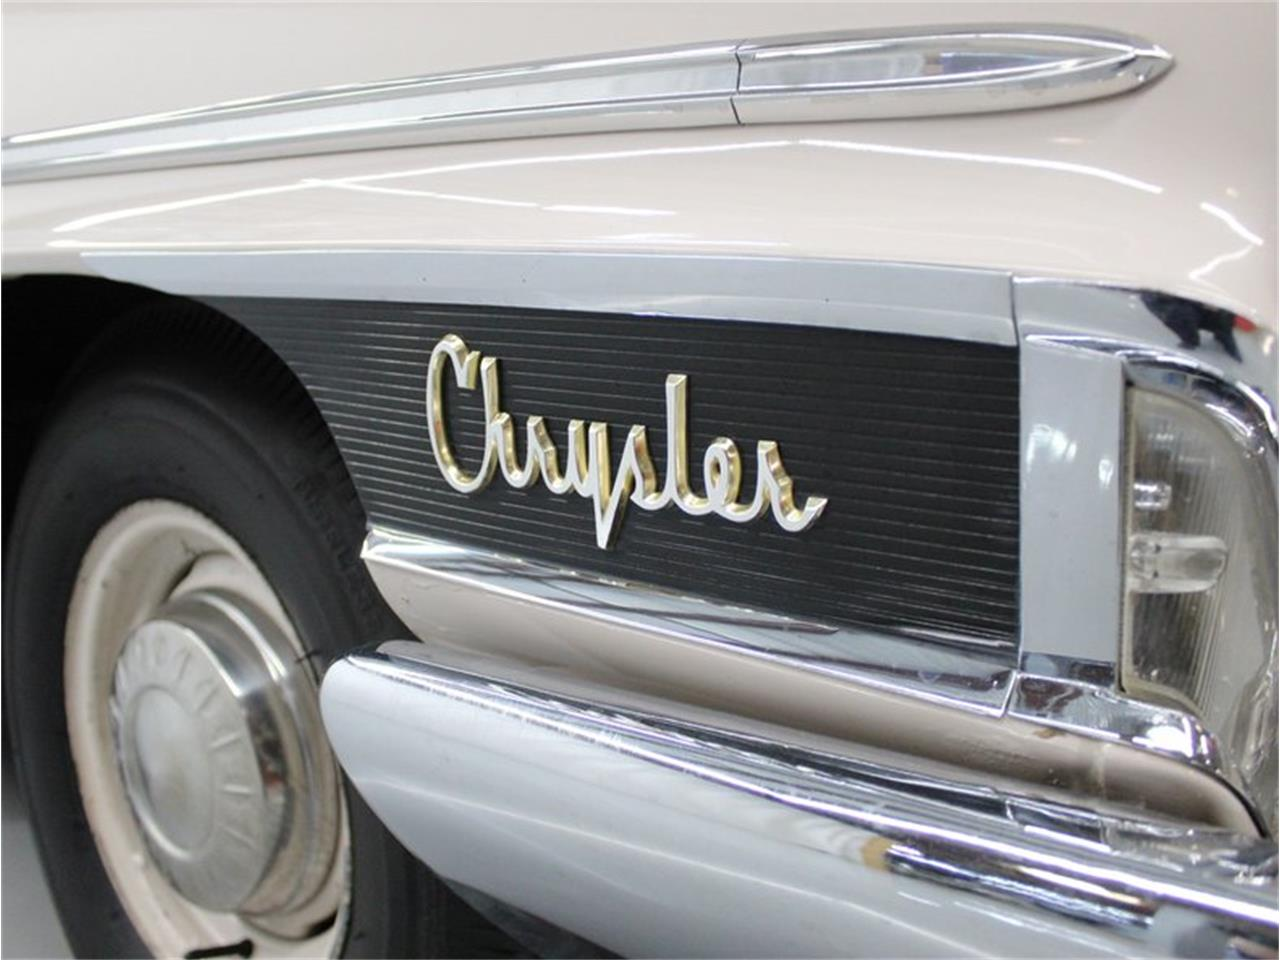 1962 Chrysler Newport (CC-1378276) for sale in Christiansburg, Virginia